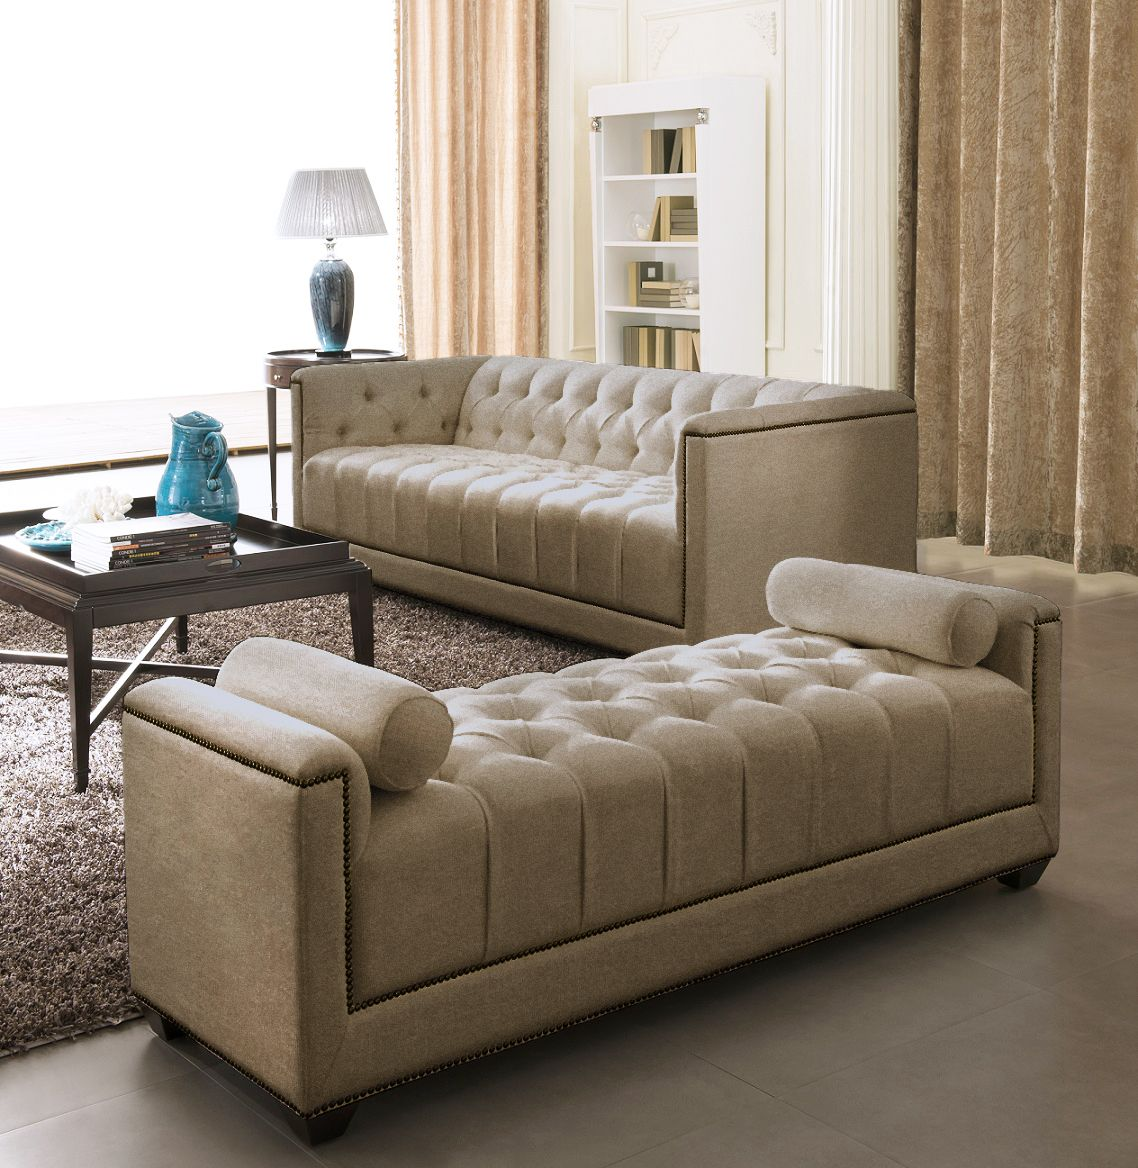 Fabric Sofa Set - Eden - Gold | Living room sofa design ...